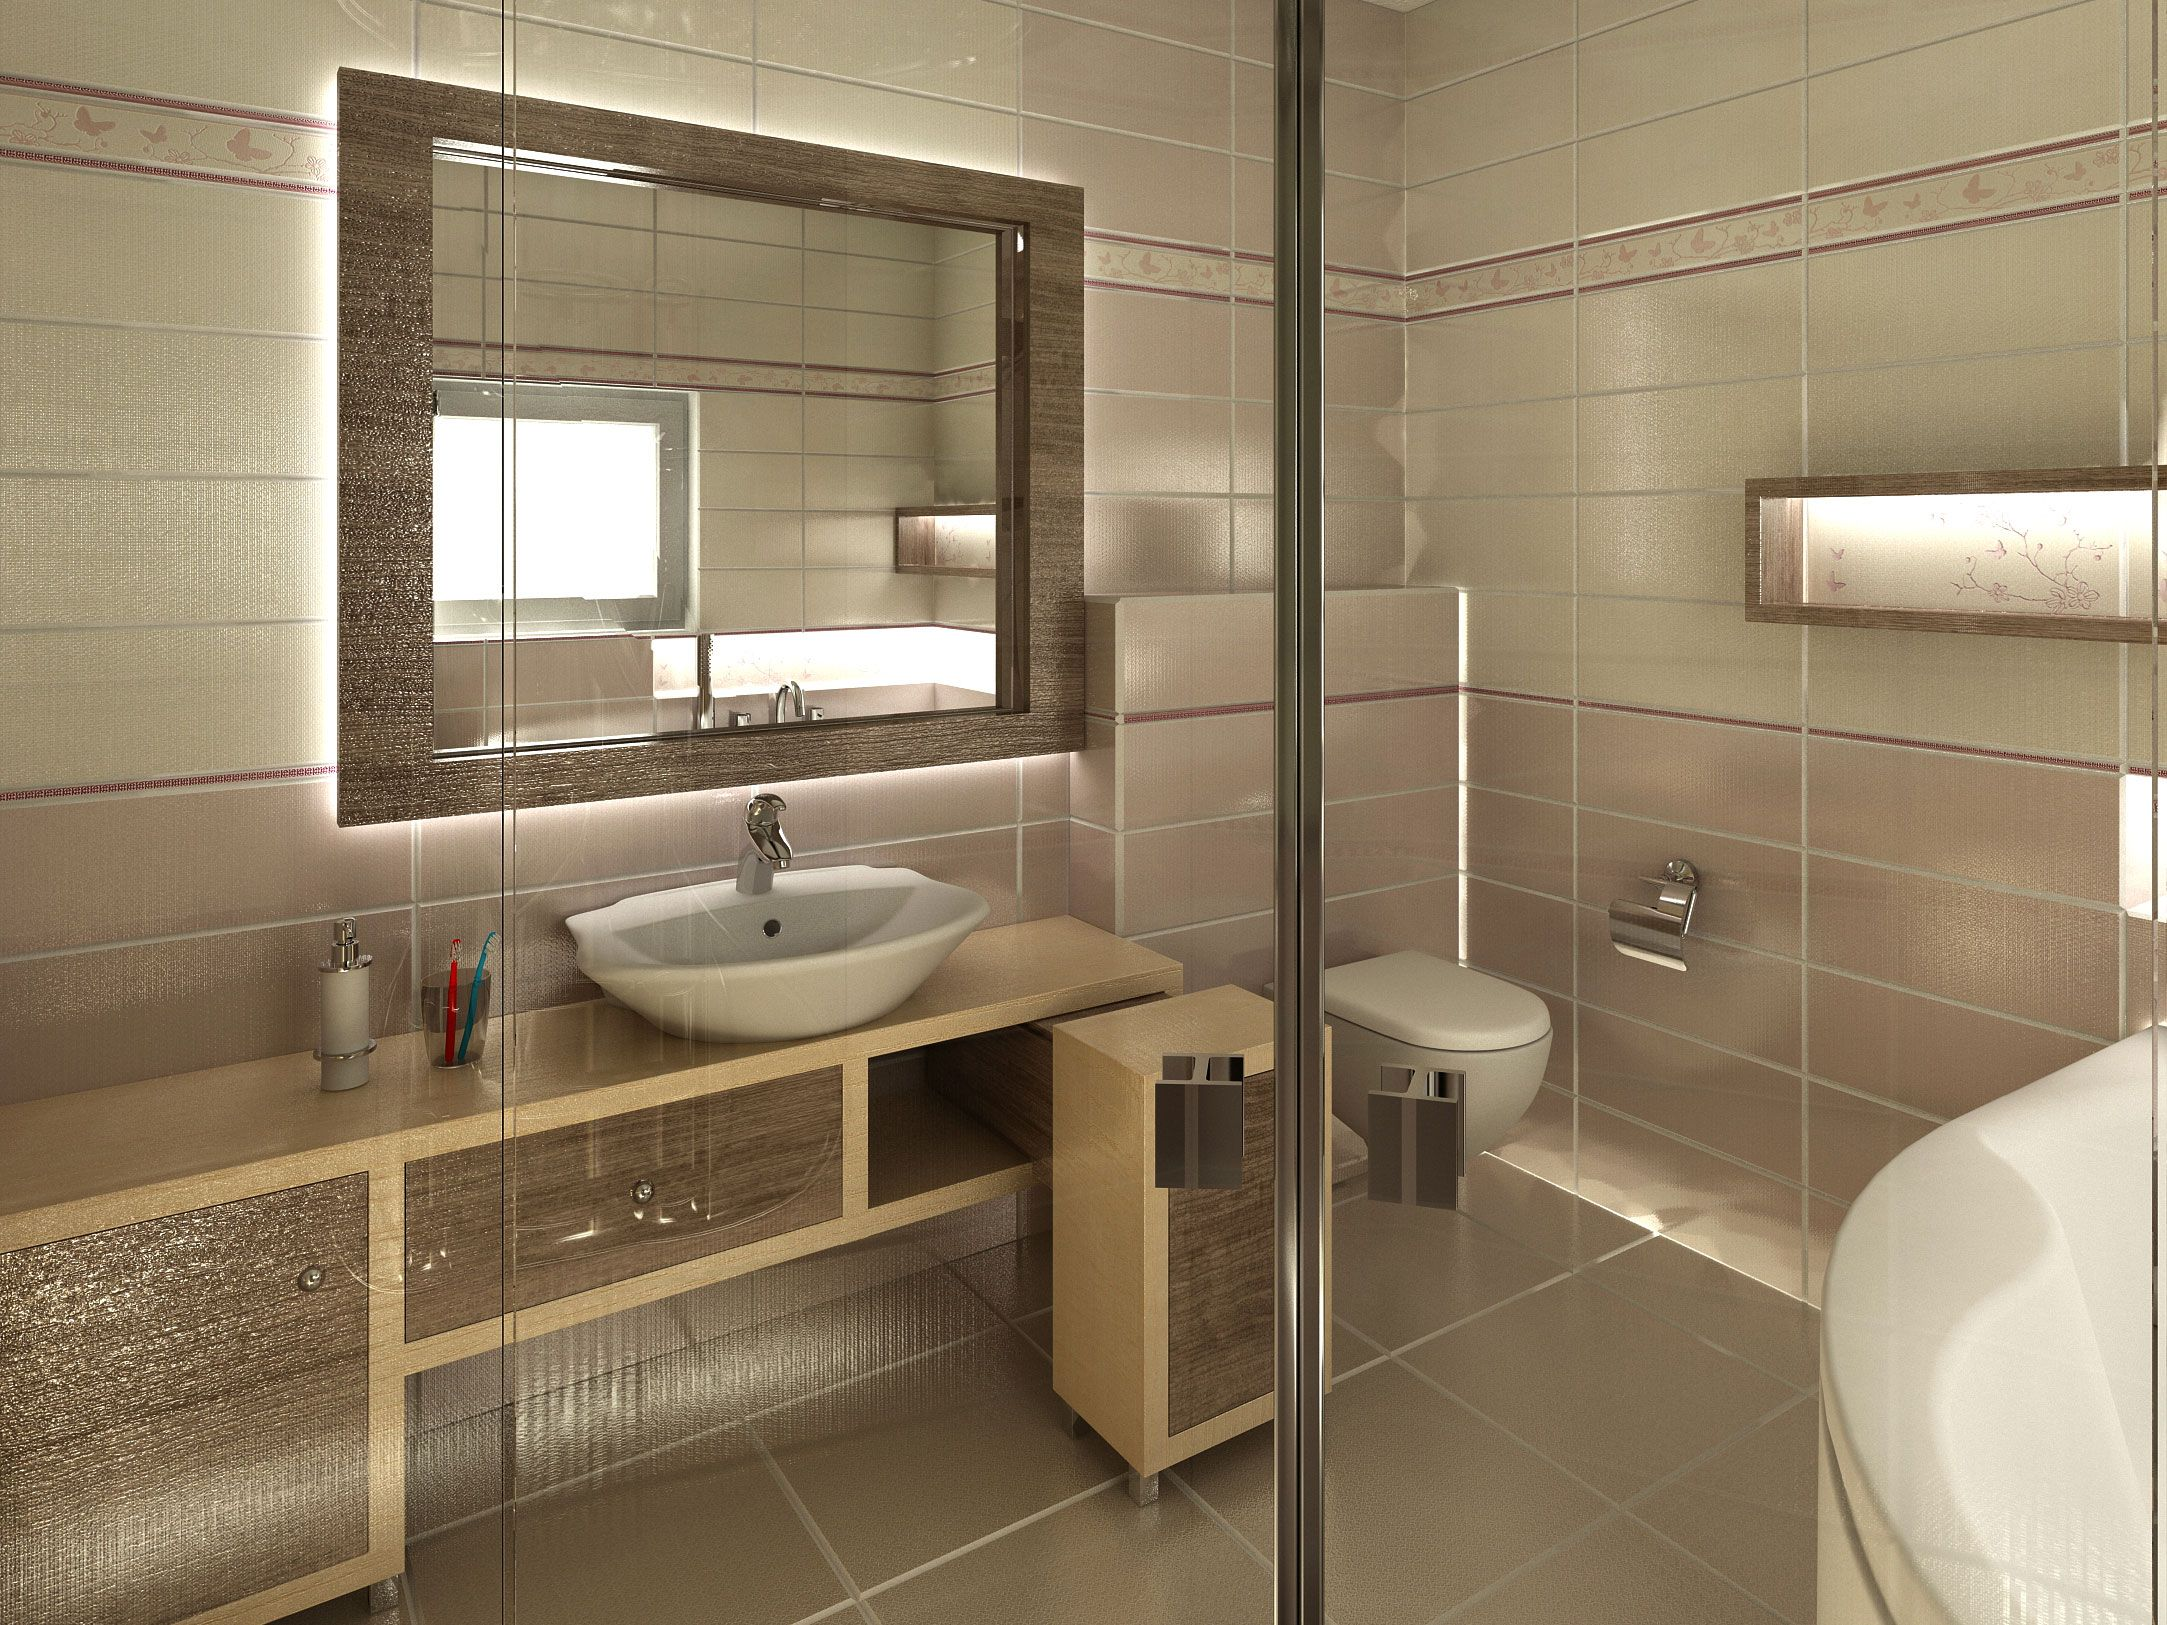 Bathroom Interiors Bathroom Interior Design Made Of Zorka Keramika Tiles Orion